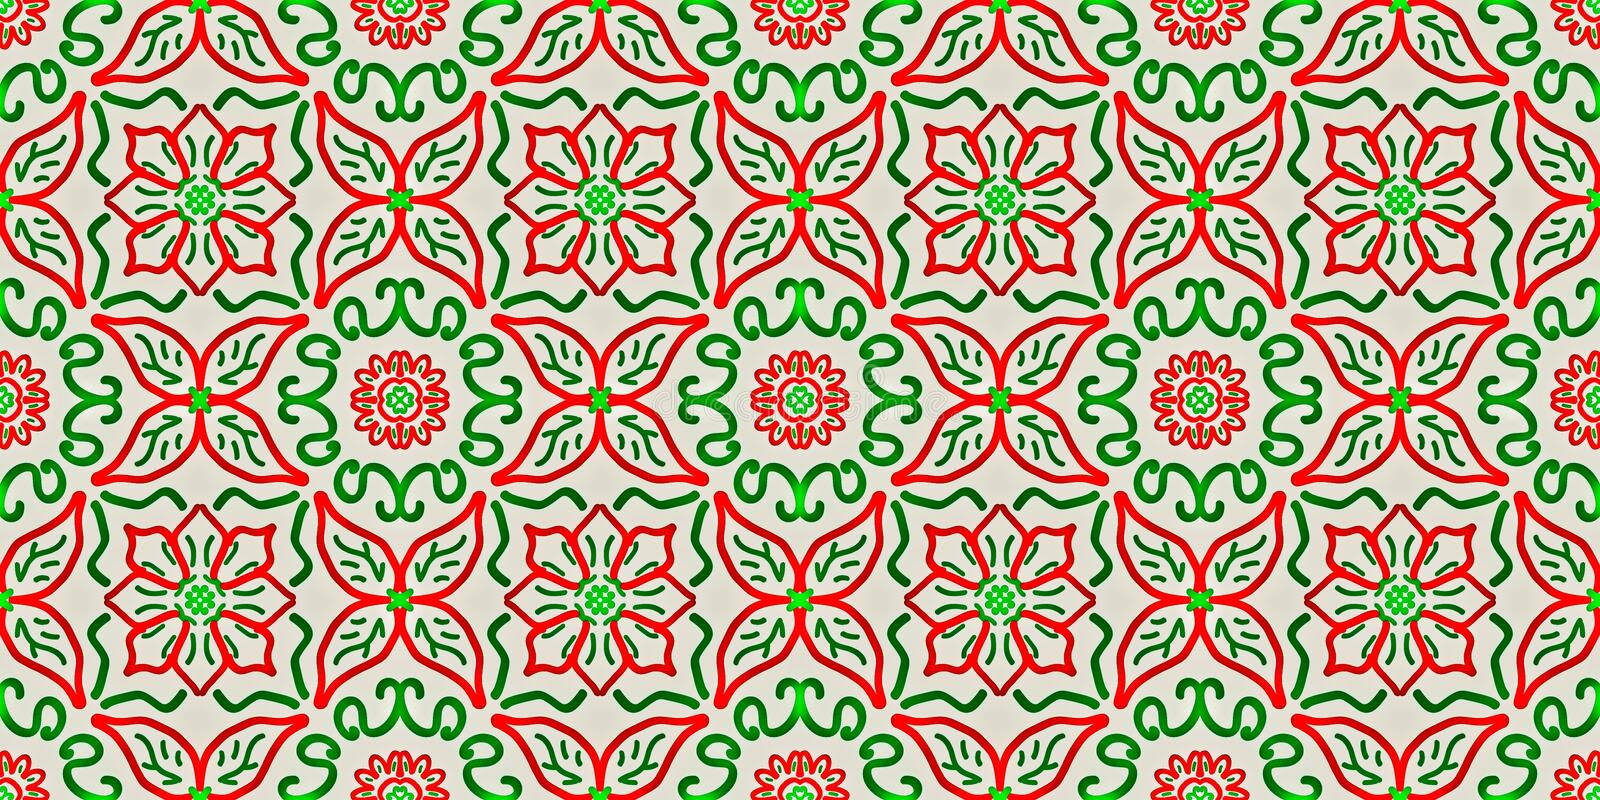 Seamless endless repeating bright ornament of multi-colored geometric shapes vector illustration